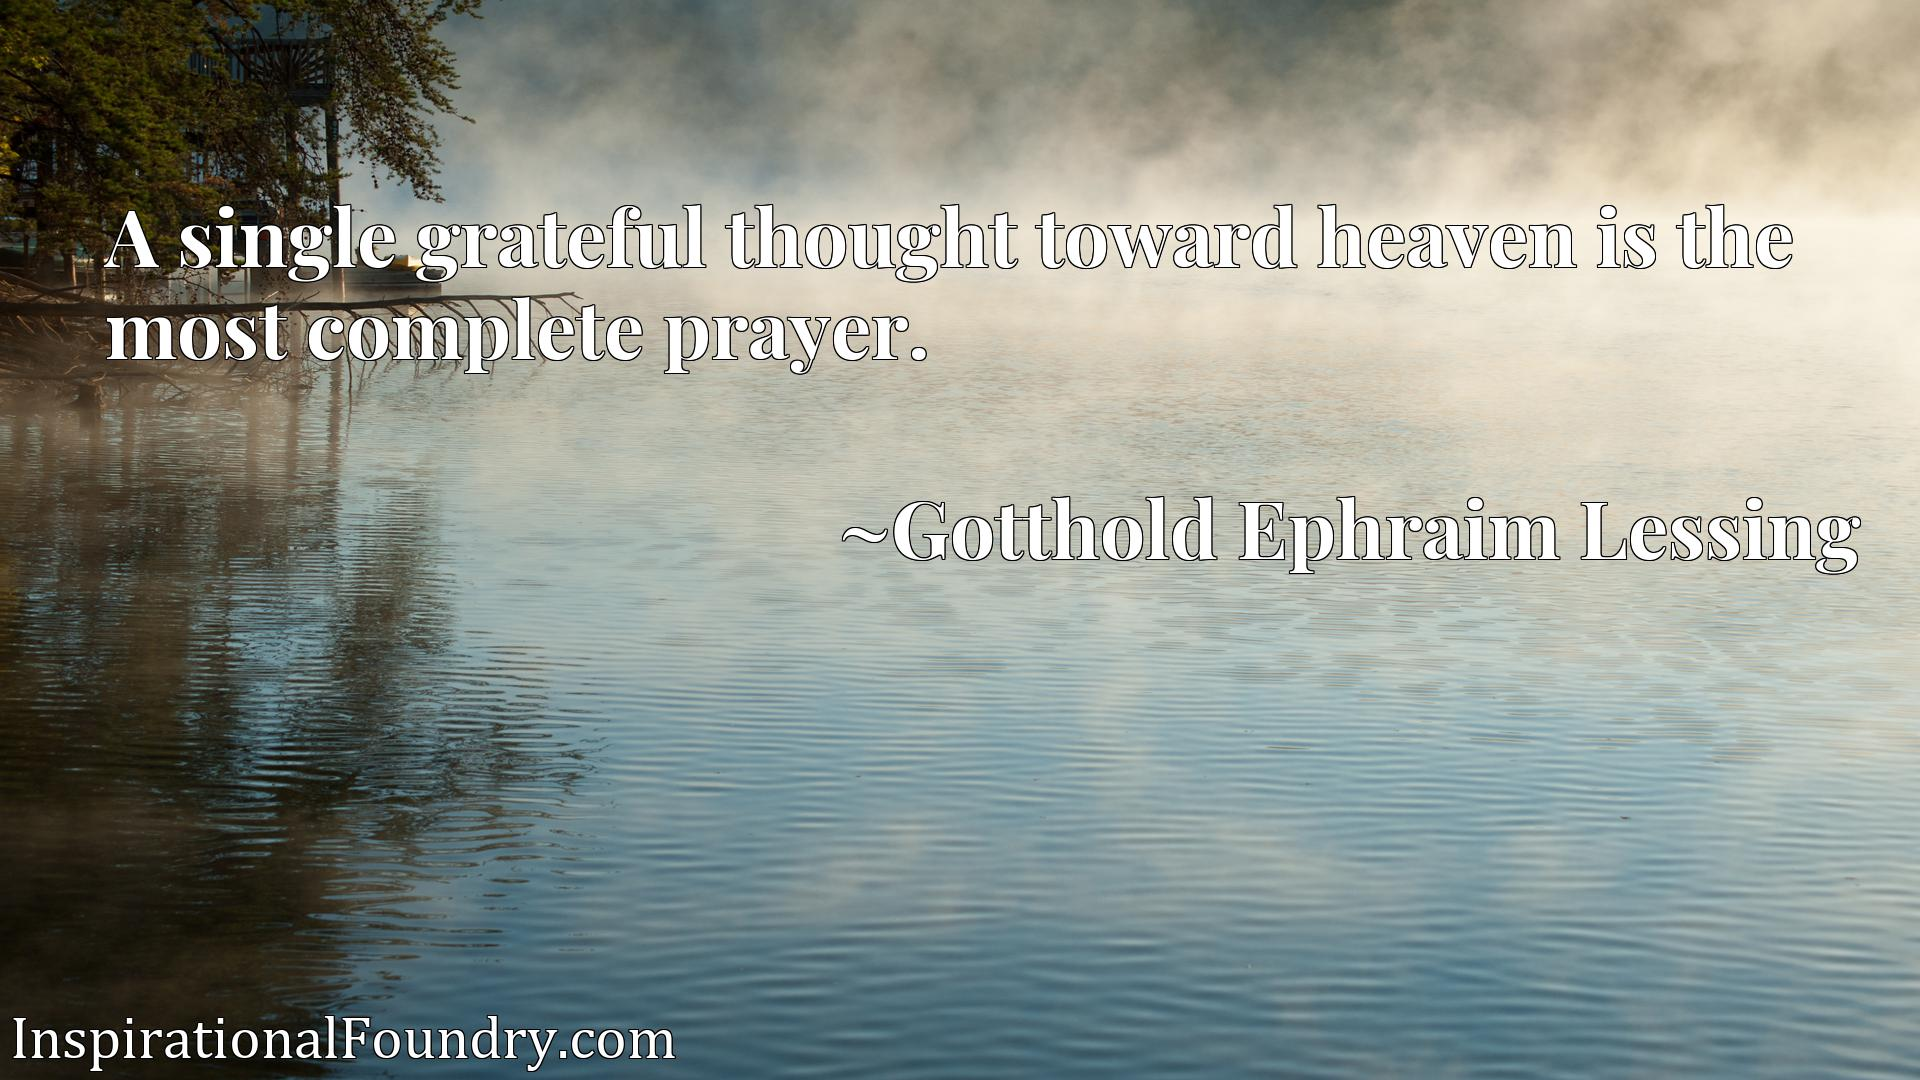 A single grateful thought toward heaven is the most complete prayer.